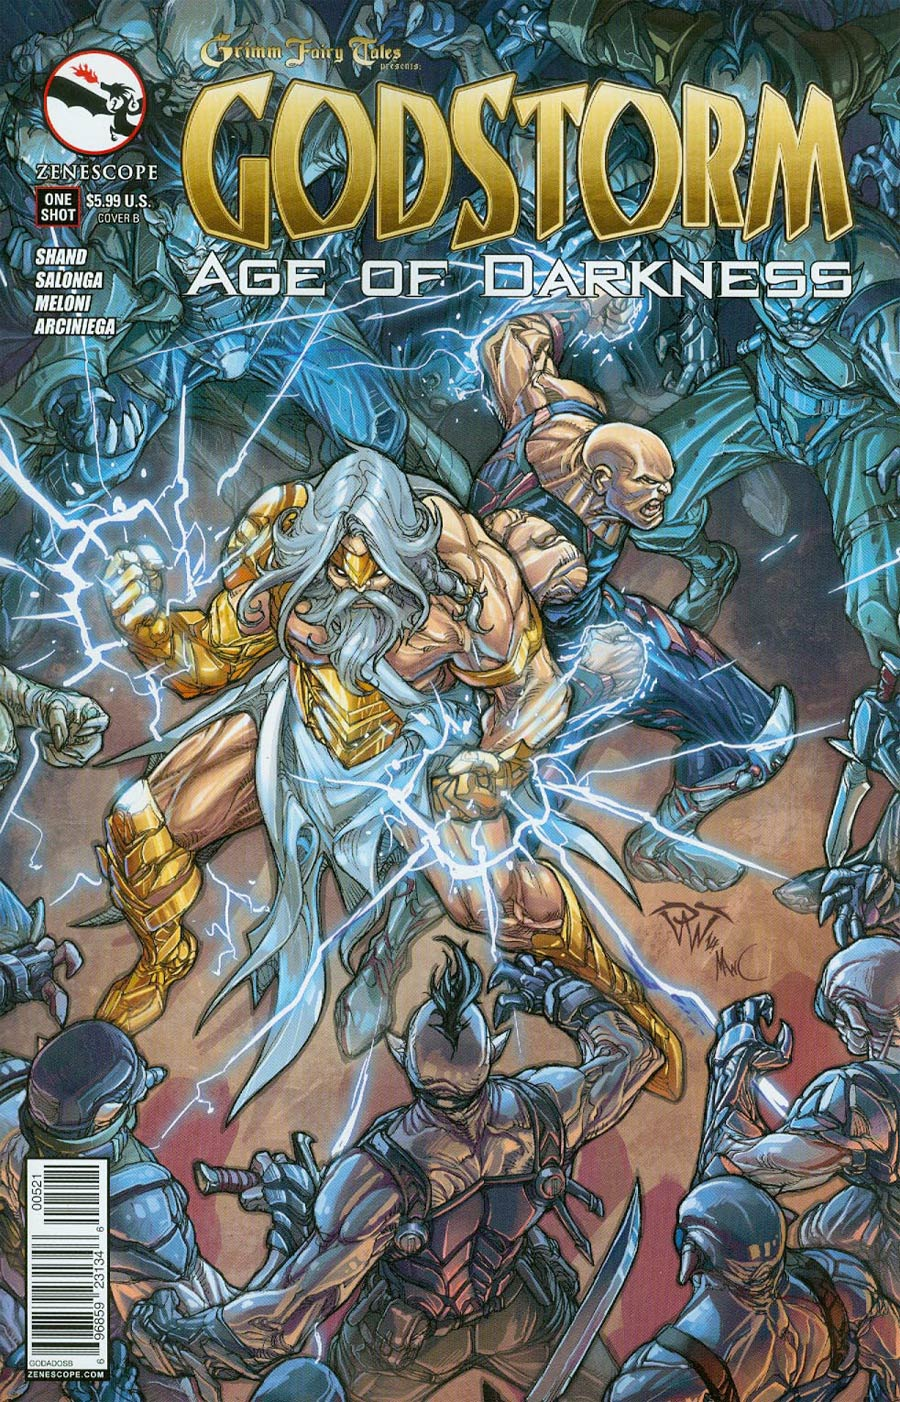 Grimm Fairy Tales Presents Godstorm Age Of Darkness One Shot Cover B Paolo Pantalena (Age Of Darkness Tie-In)